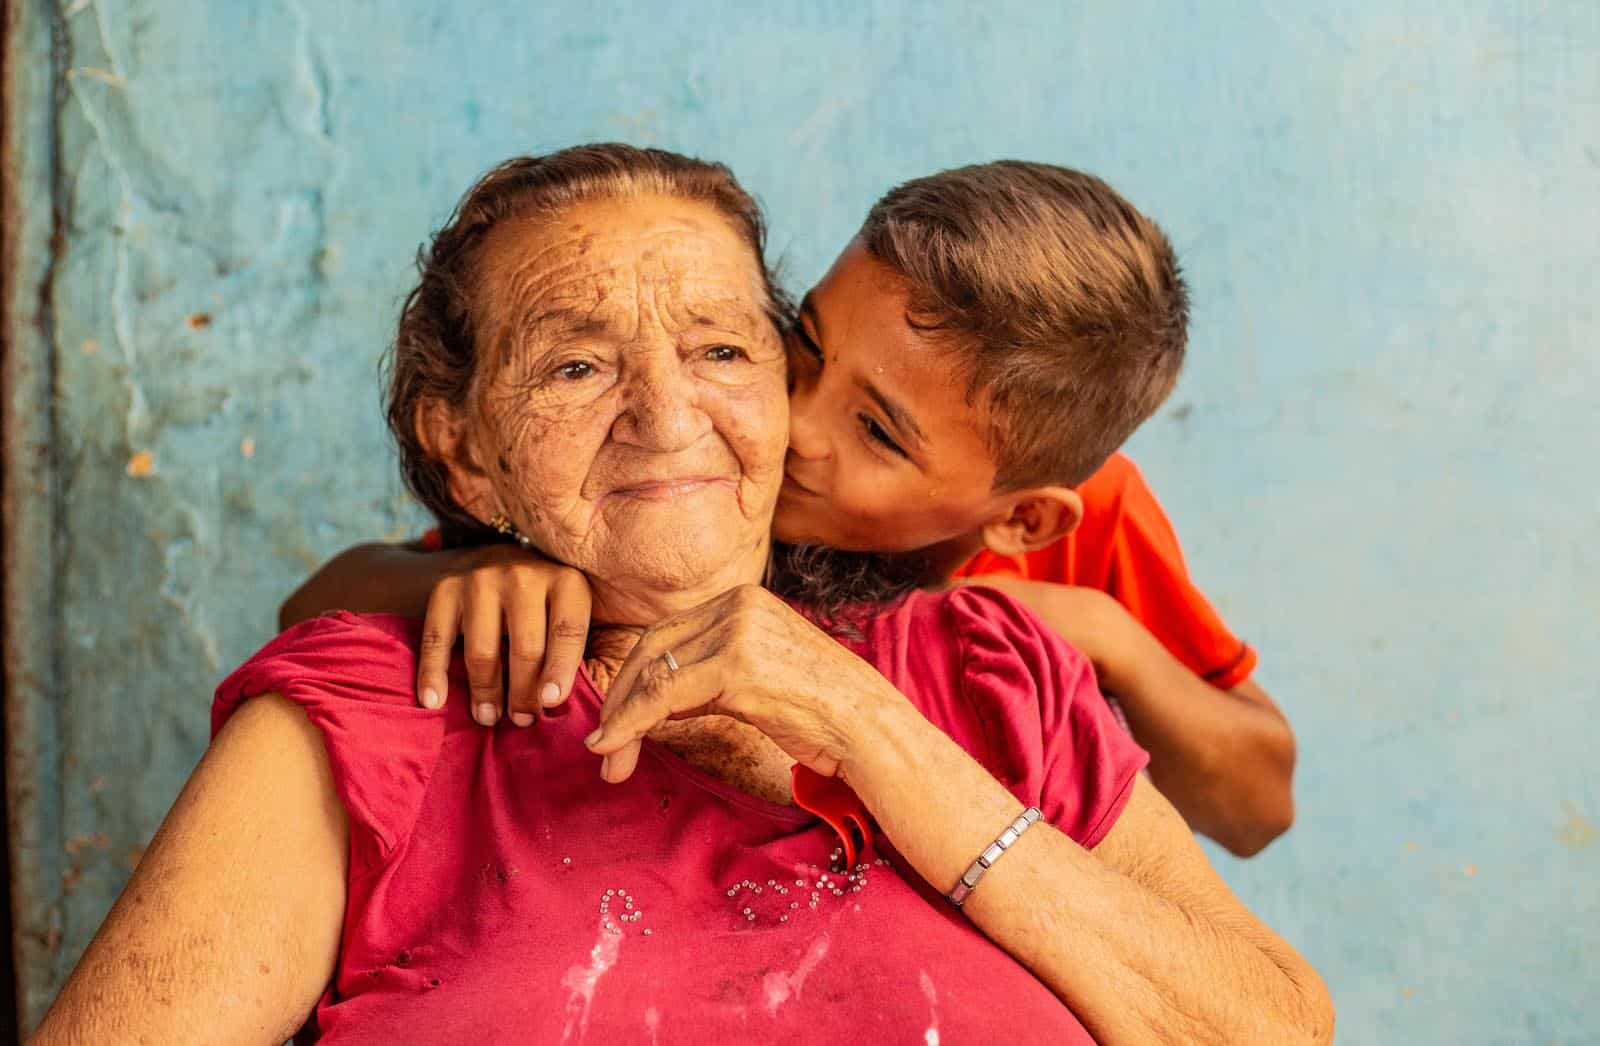 A boy kisses and elderly woman on the cheek.